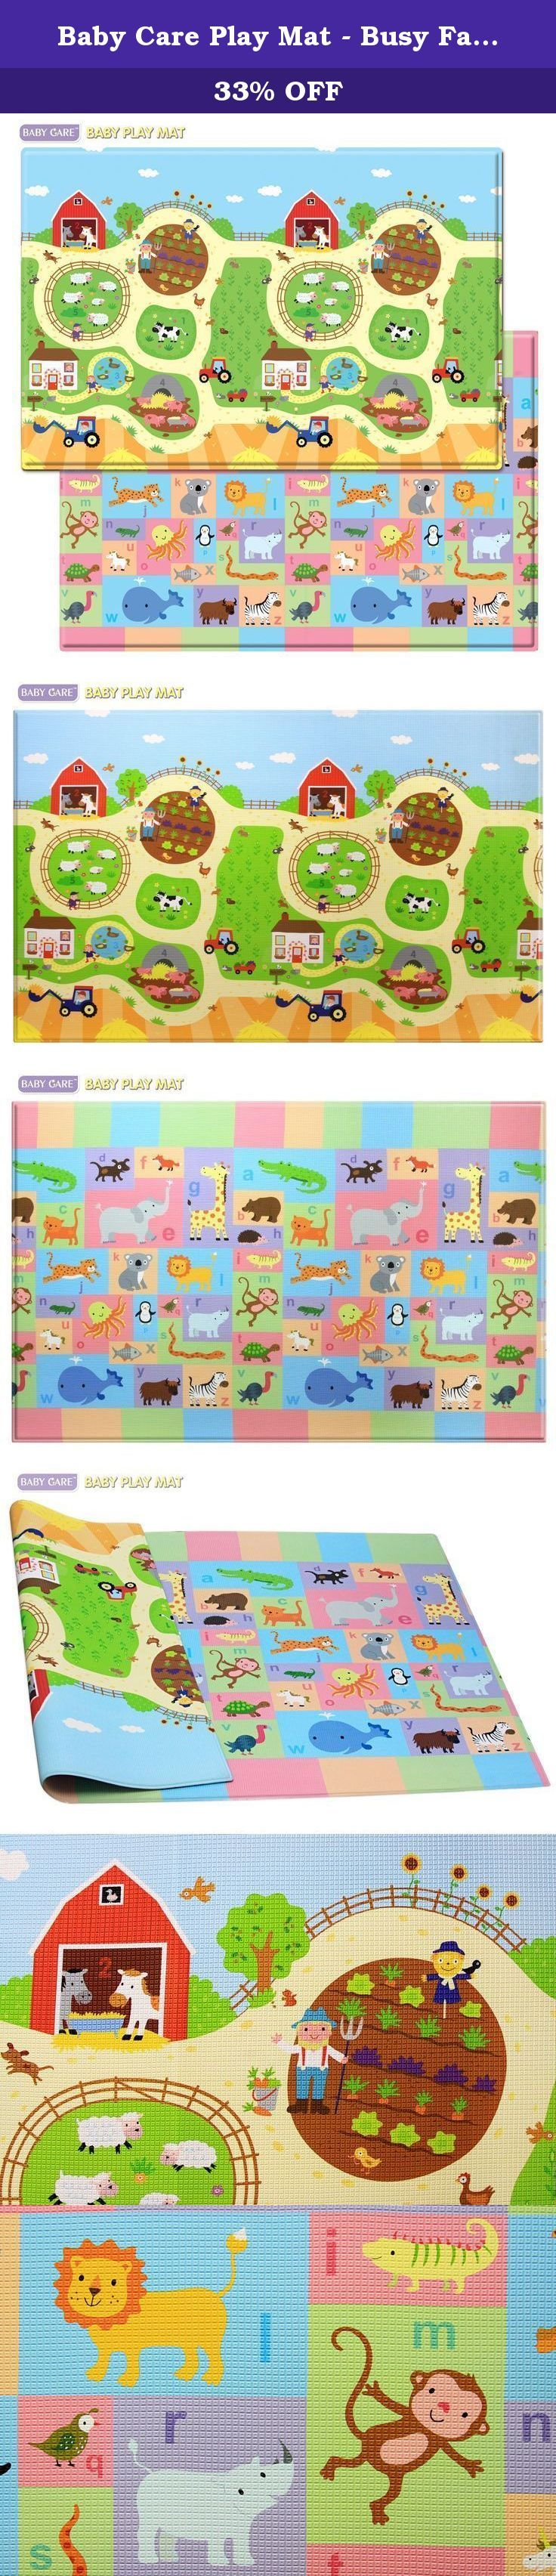 Baby Care Play Mat - Busy Farm (Large). Developed specifically for growing babies and children, BABYCARE Baby Play Mat provides hygienic and safe floor space for the family with small ones. Babies and children can play safely on the floor, with stimulating and vibrant colors, characters, and educational elements like letters and numbers. This Play Mat is an essential item for the safe growth and development of your baby and toddler. It protects children from hard floor surfaces…